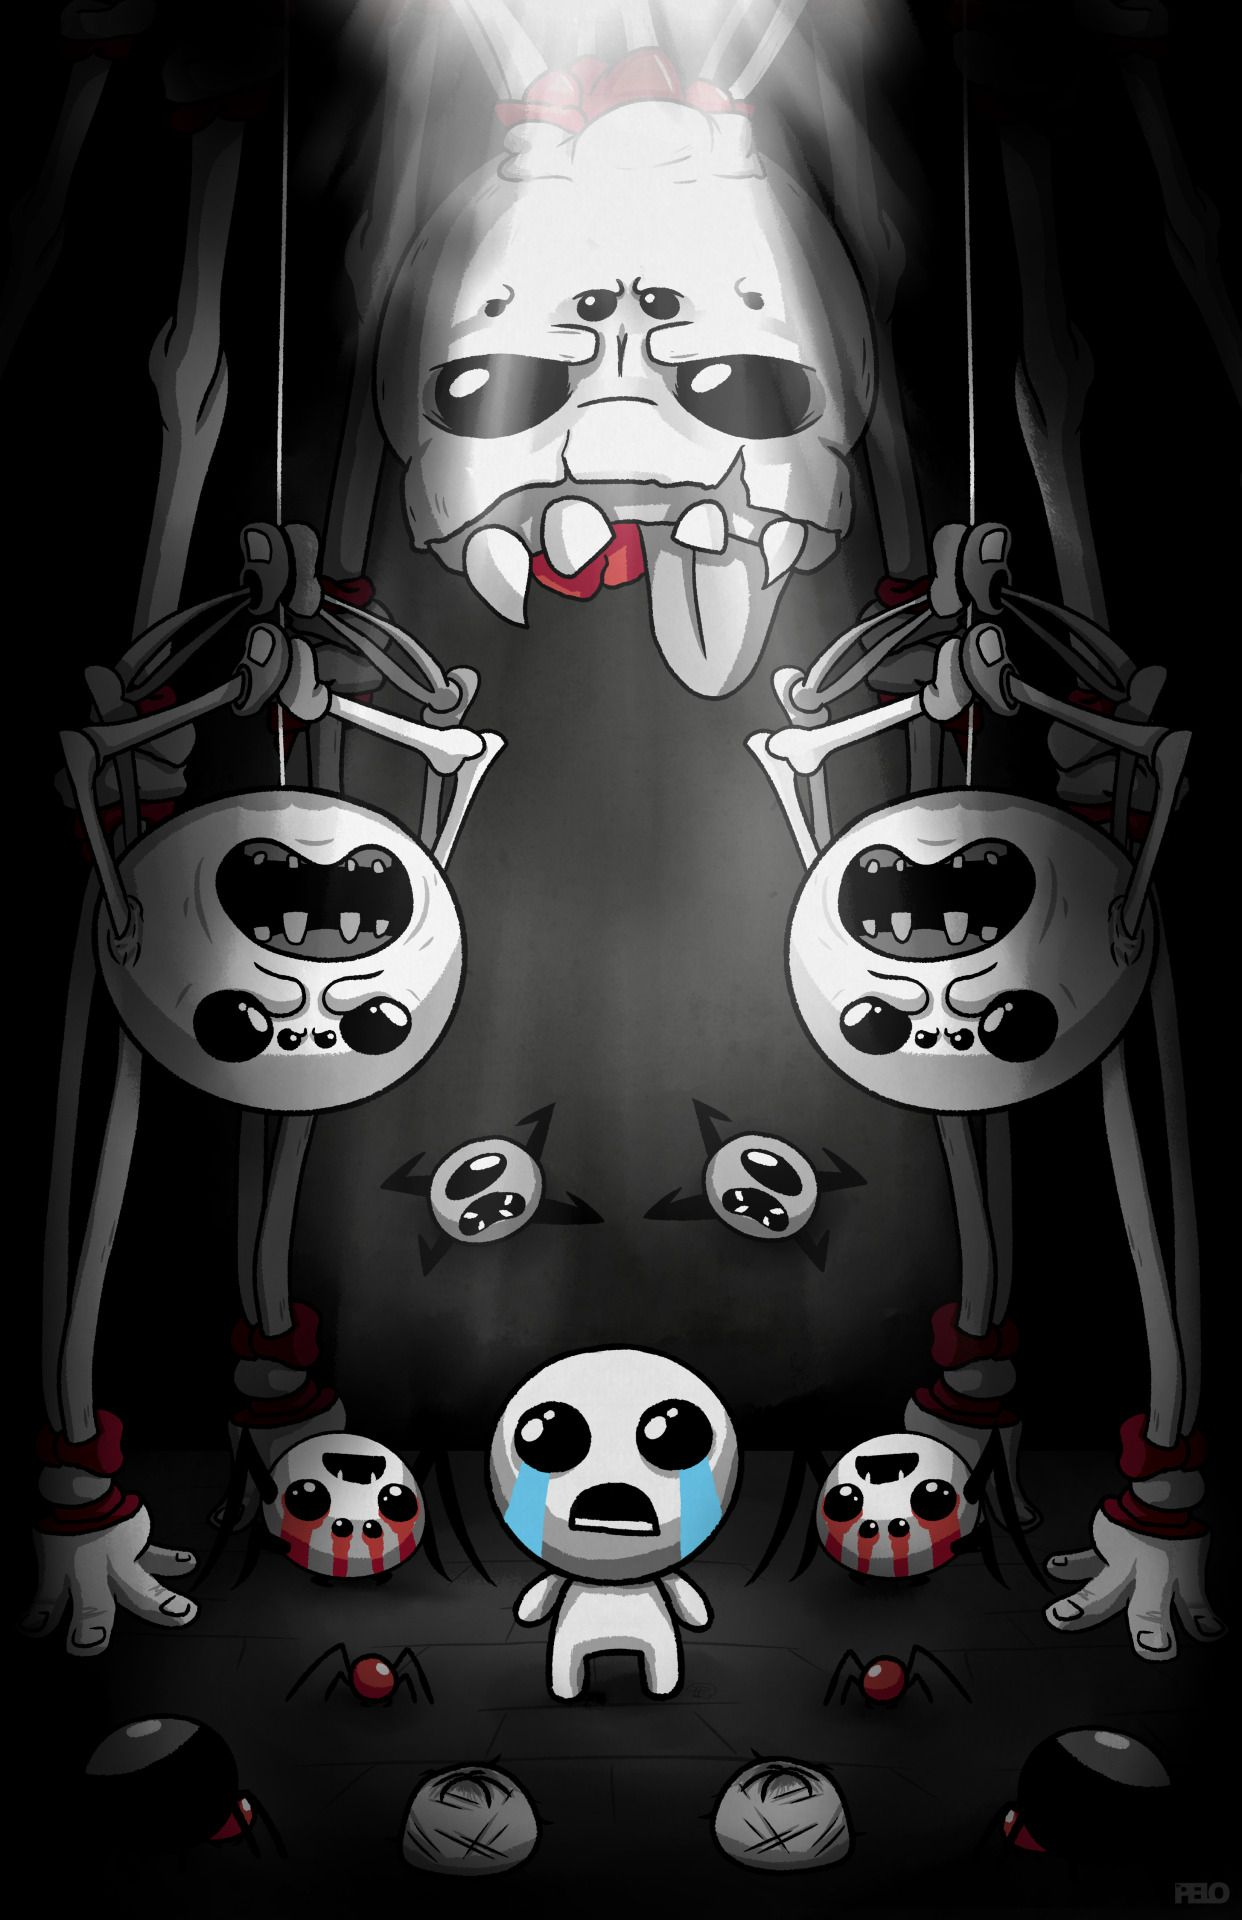 Arachnophobia Poster The Binding Of Isaac The Binding Of Isaac Isaac Game Concept Art